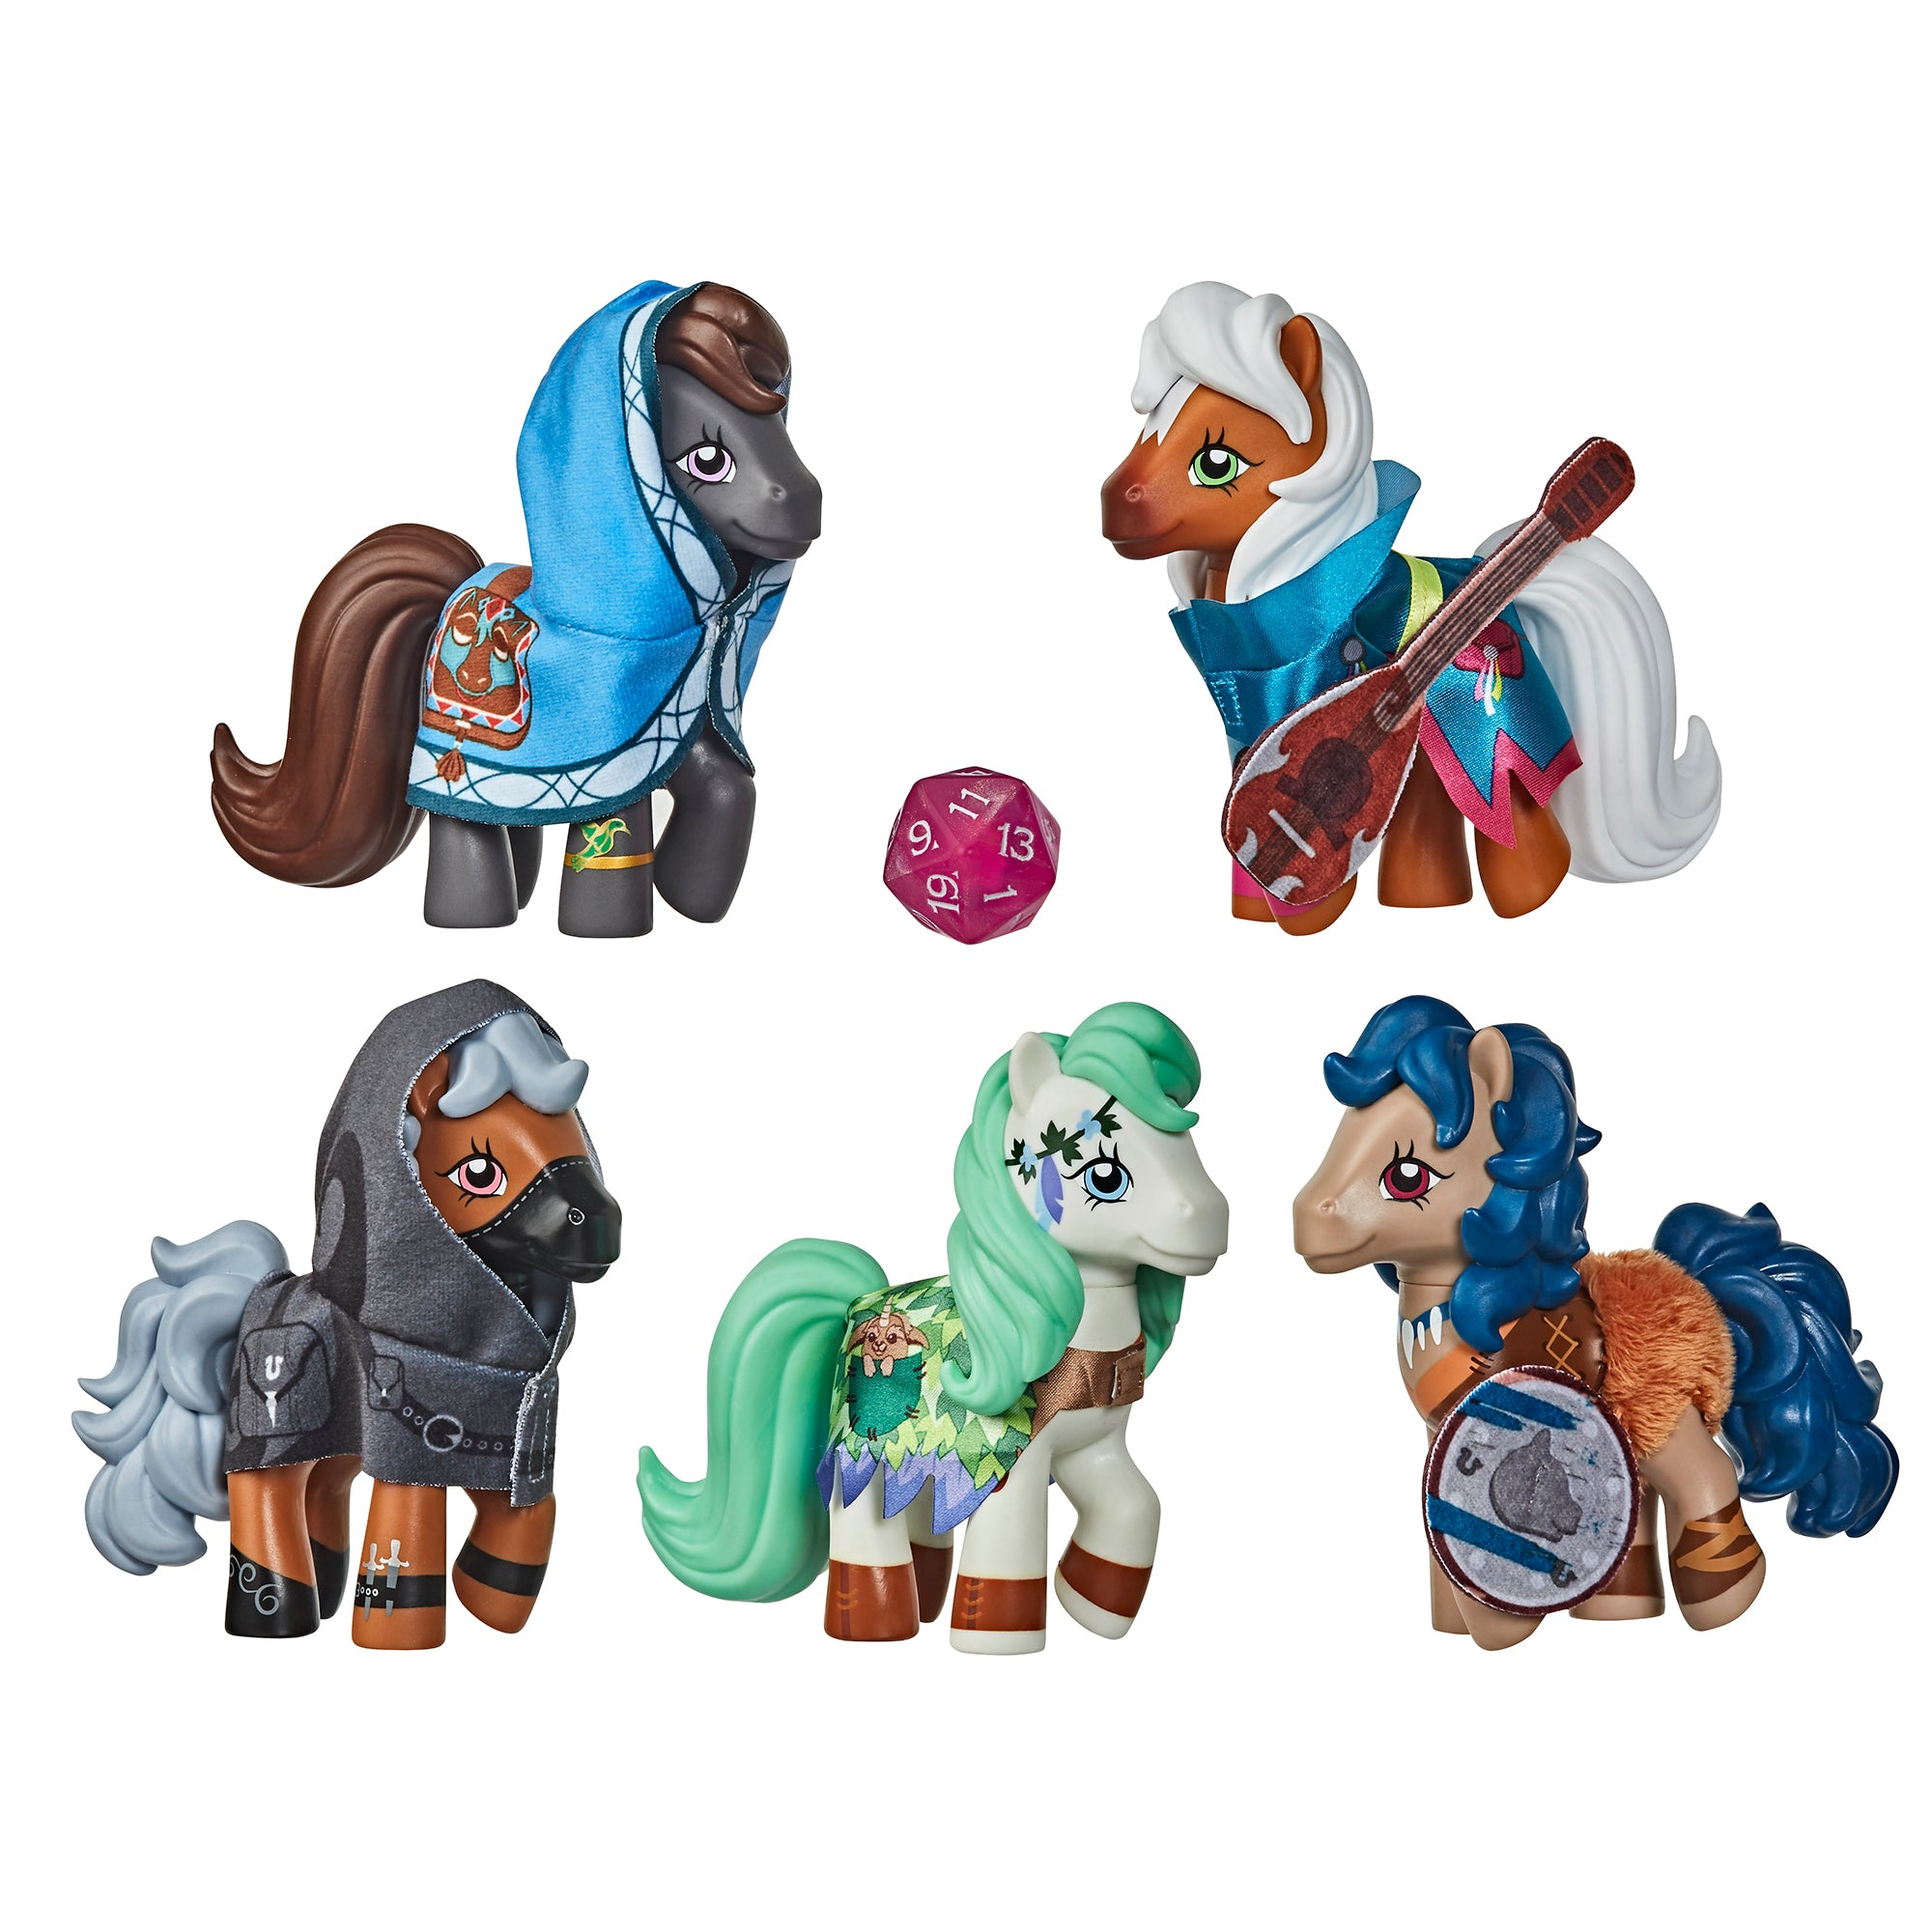 Ghostbusters-Inspired Collectible Pony Figure My Little Pony x Ghostbusters Crossover Collection Plasmane